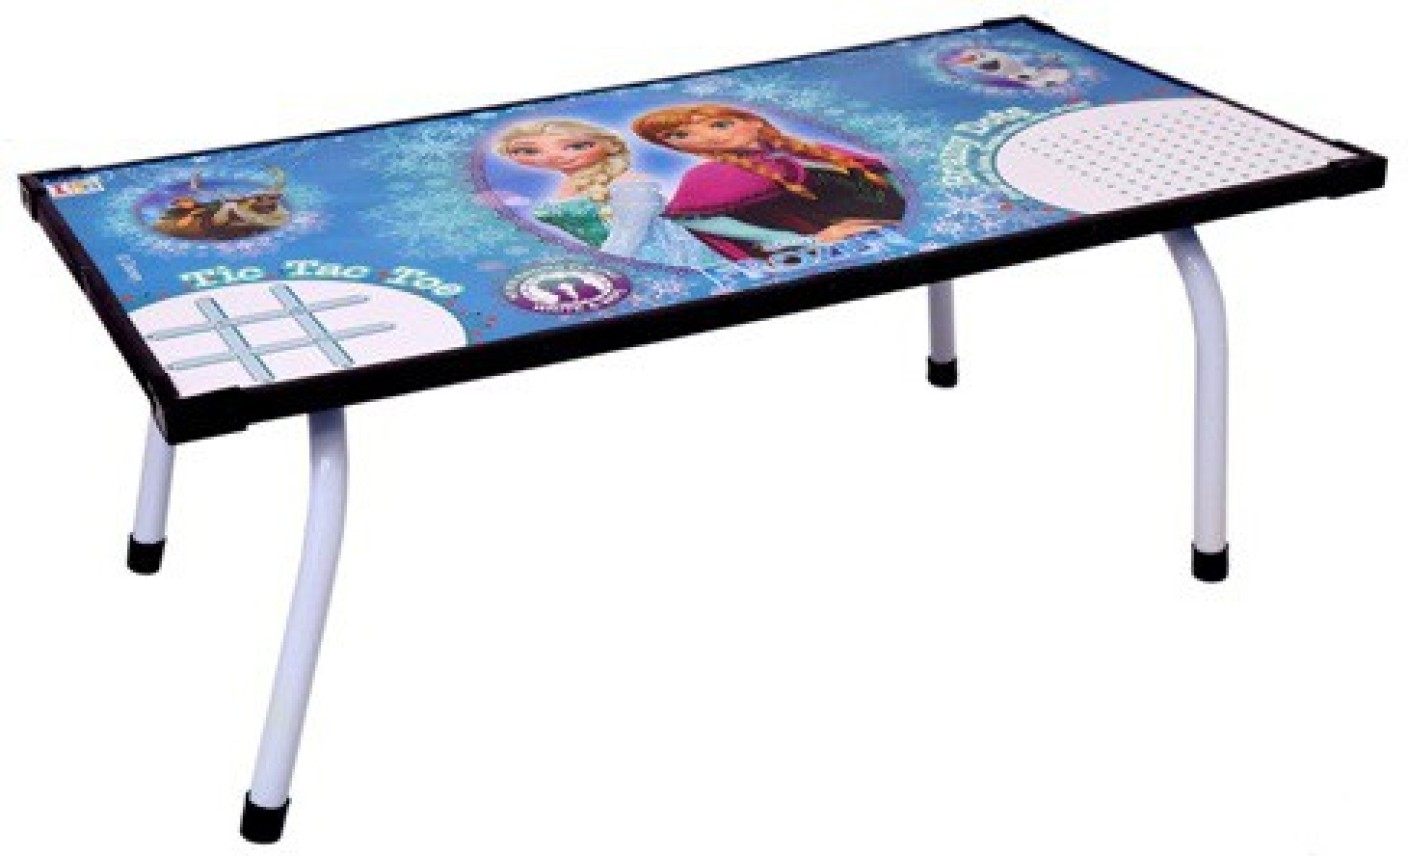 Disney Frozen Multipurpose Table Board Game. ADD TO CART